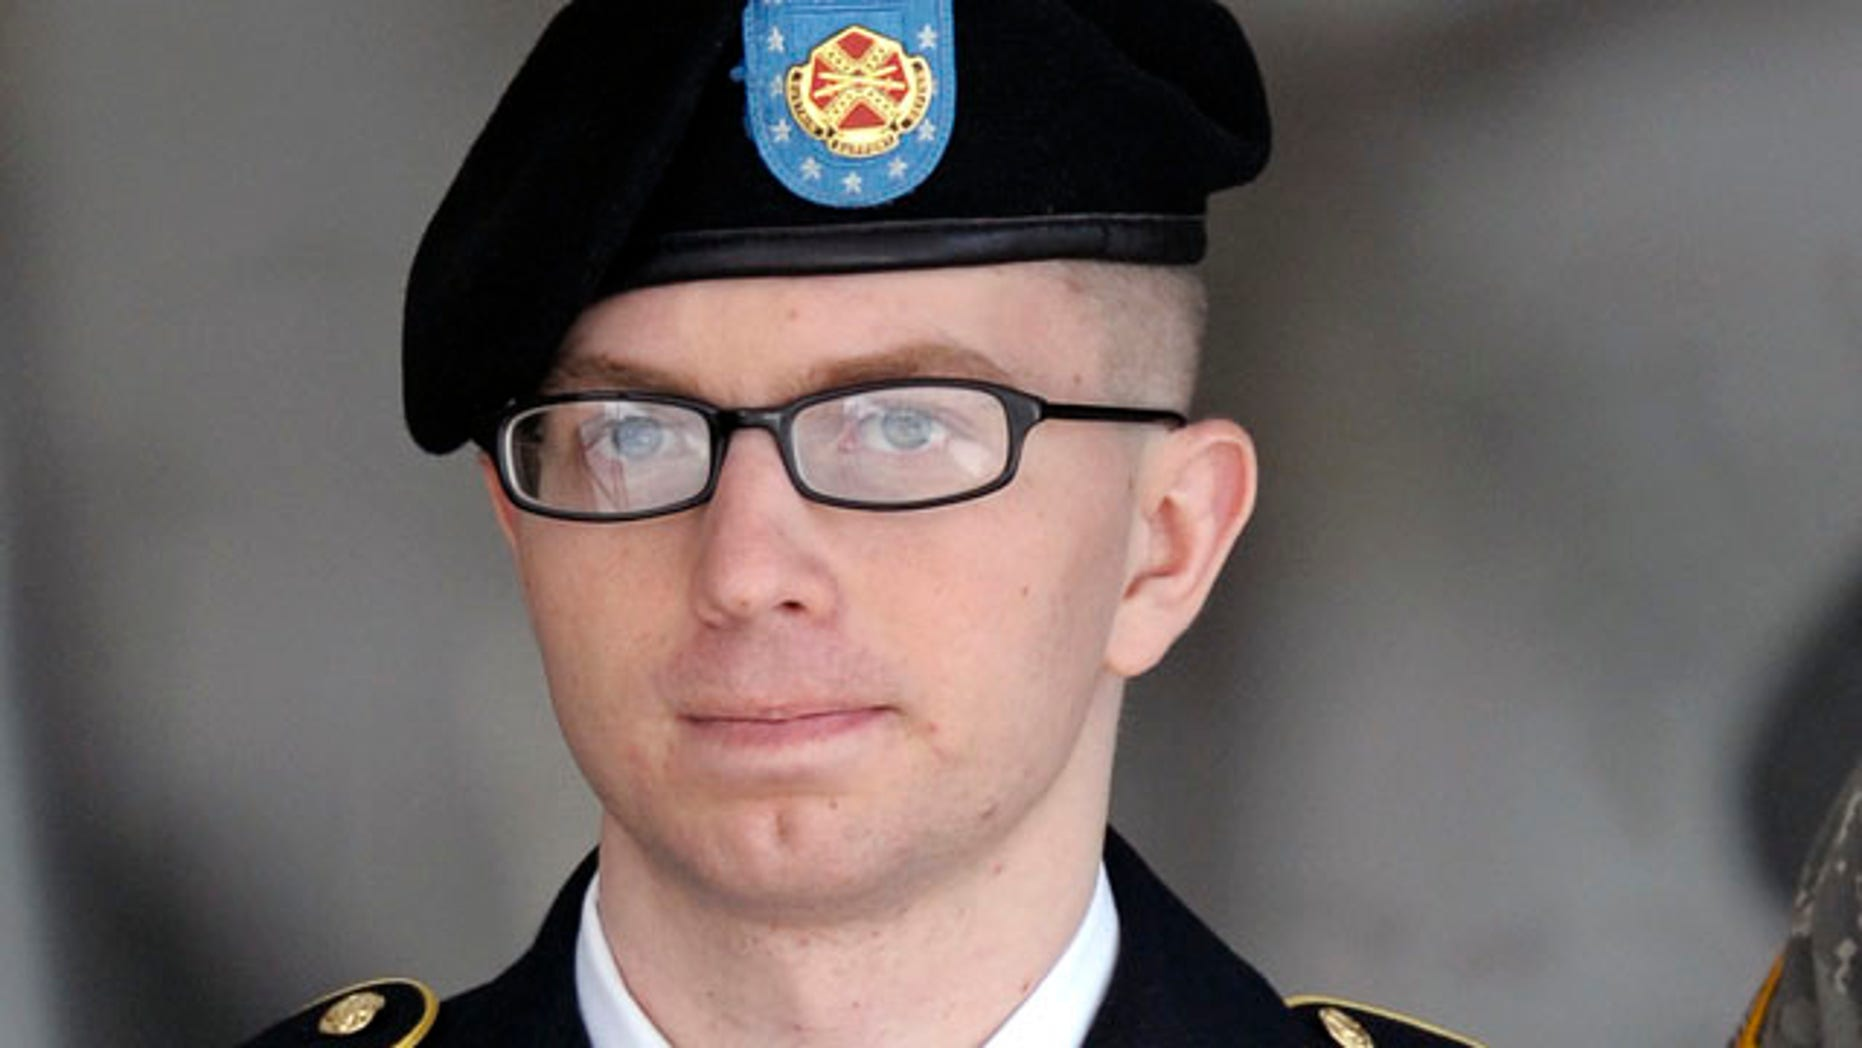 Pfc. Bradley Manning's trial is set to resume after being charged with aiding the enemy.